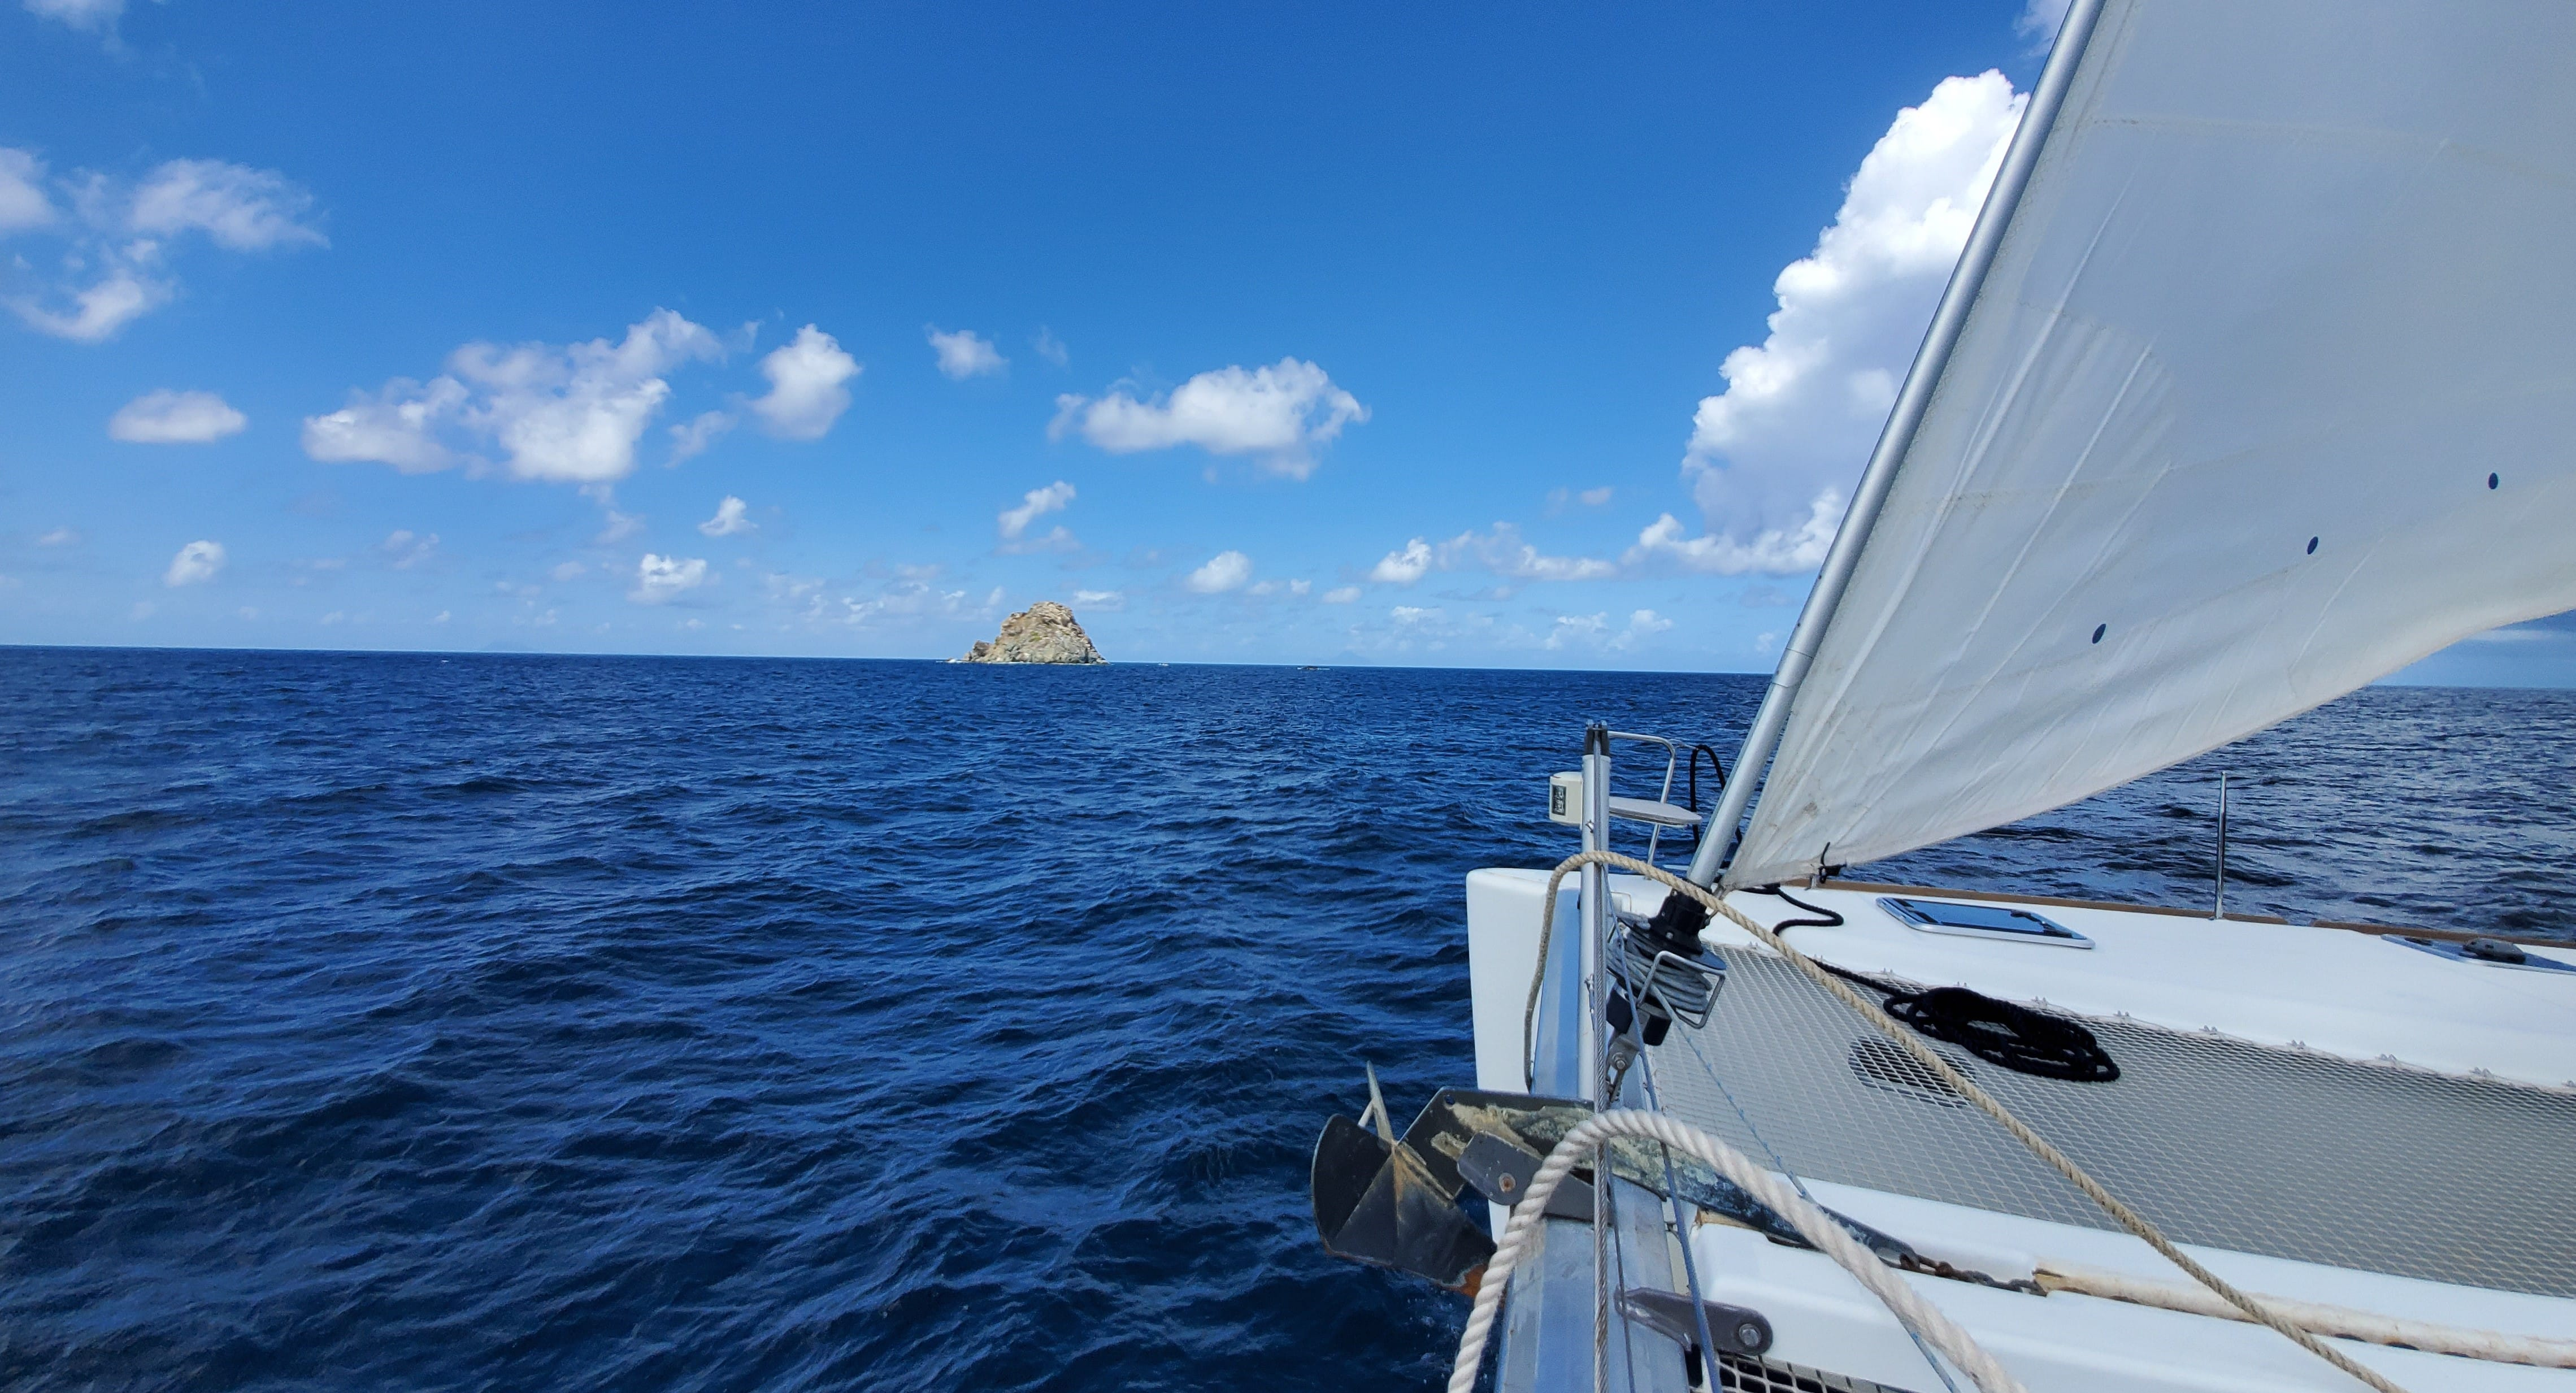 Six Destinations For Your Charter Sailing Vacation